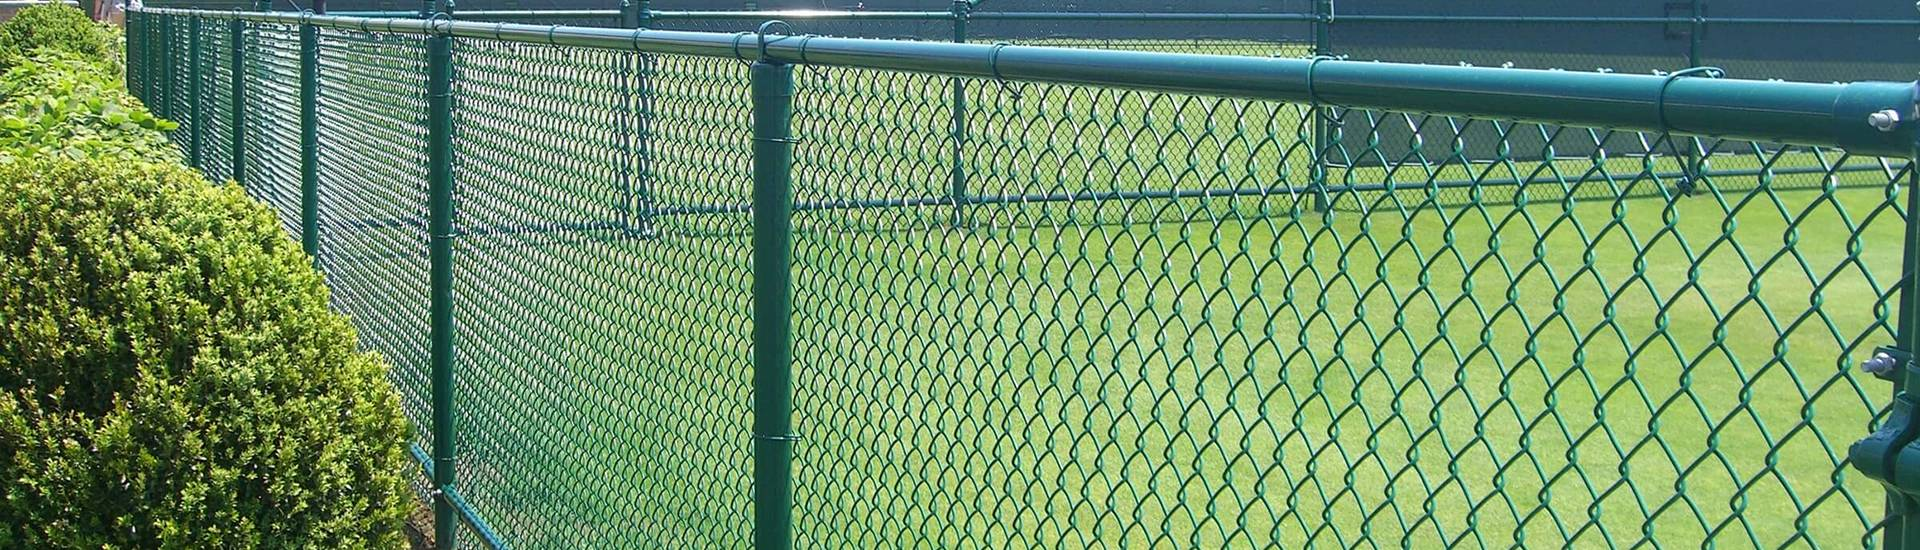 Green color chain link fences are installed on the grassland.